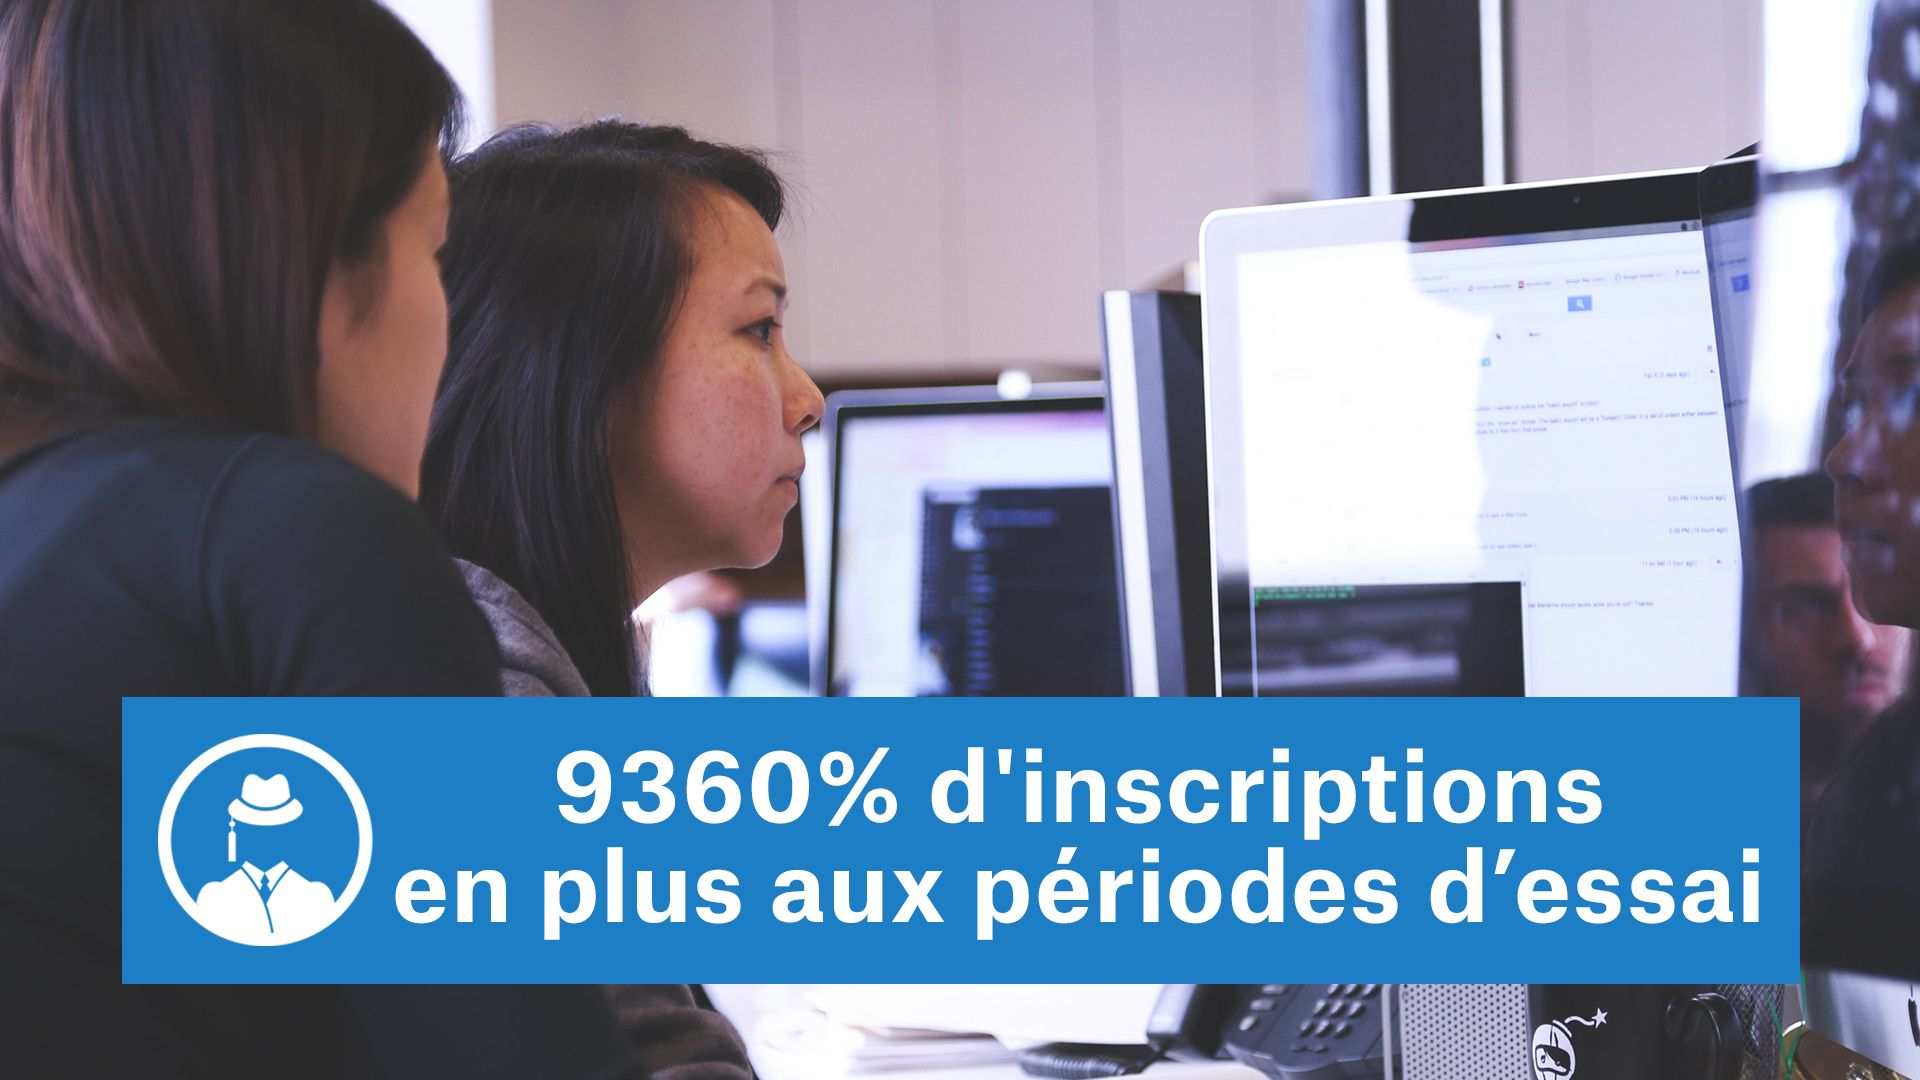 9360% d'inscriptions en plus aux périodes d'essai #GrowthHacking #WebMarketing #FormationGrowthHacking #CentreDeFormationFrance #TunnelAARRR #AARRR #SocialMedia #CommunityManagement #SEO #MarketingDigital #SiteWeb